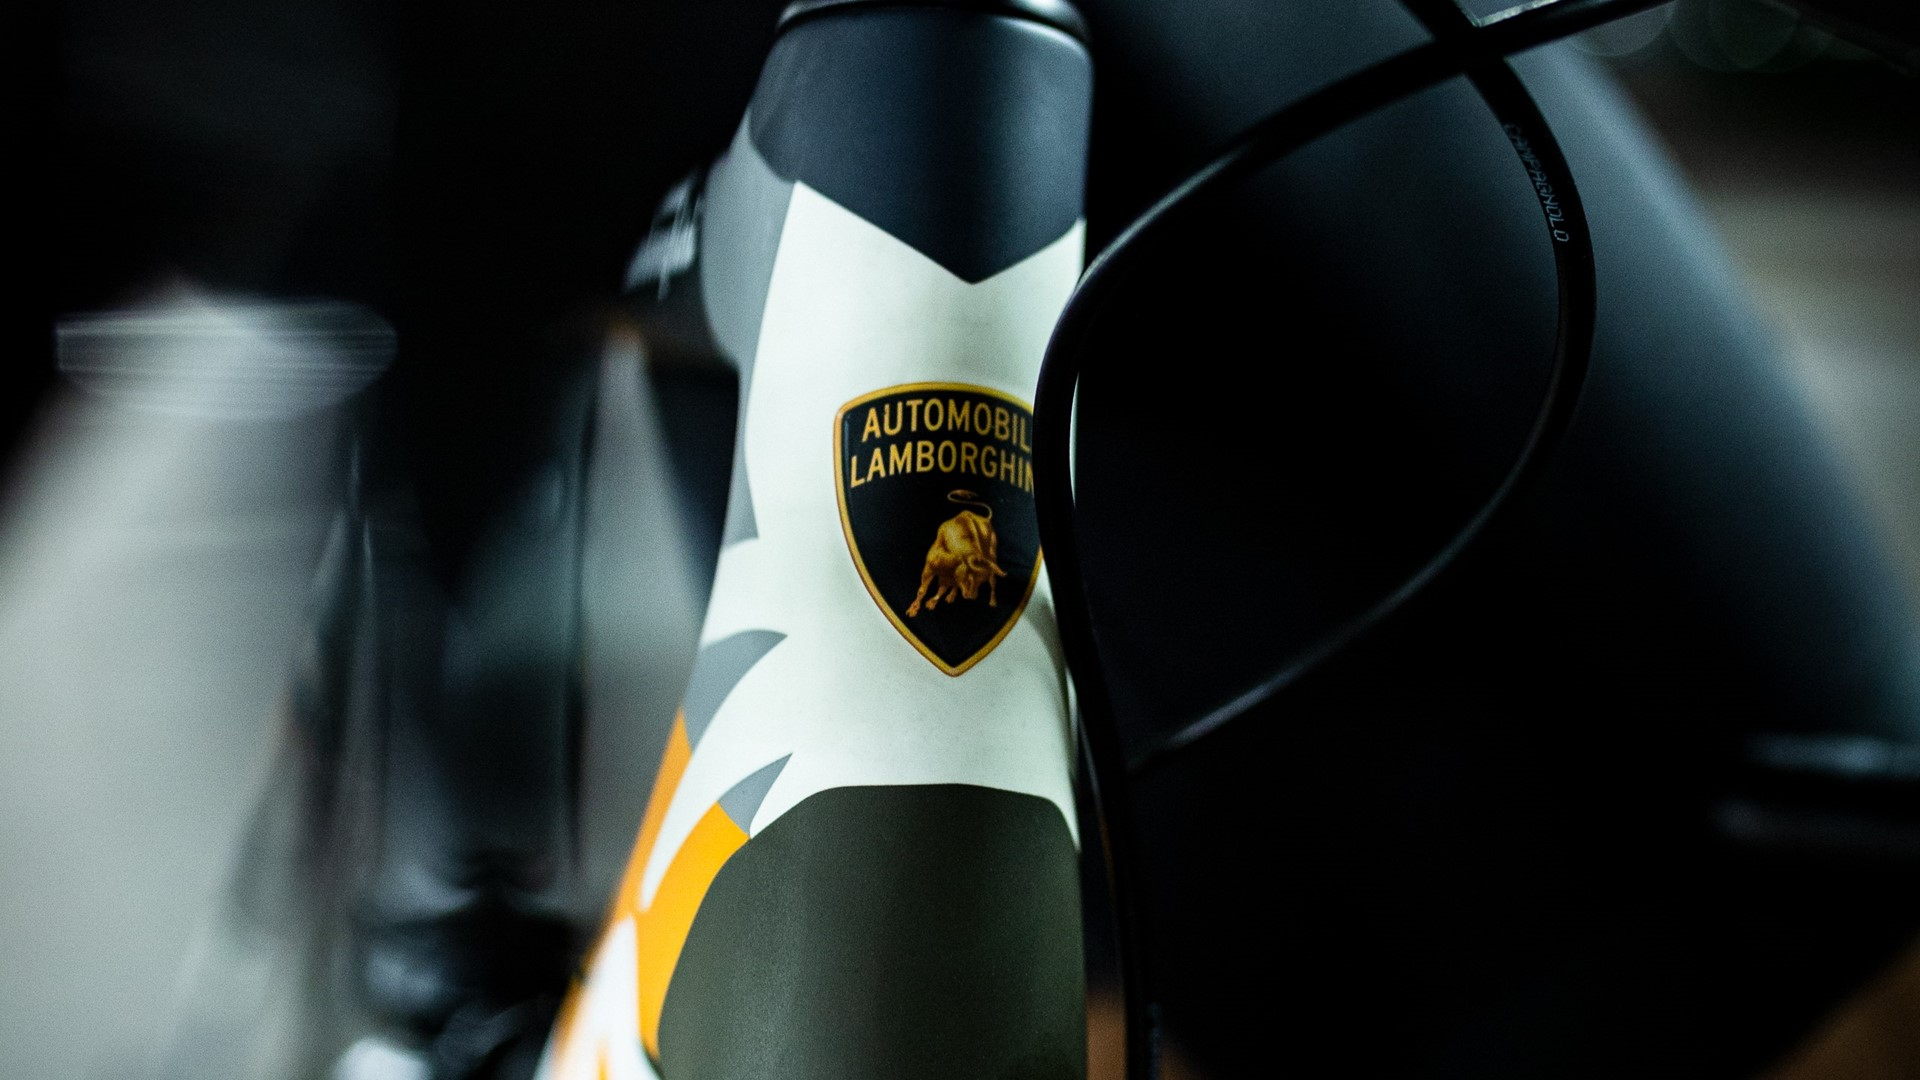 Automobili Lamborghini and Cervélo present the new R5 bicycle in a limited edition - Image 2